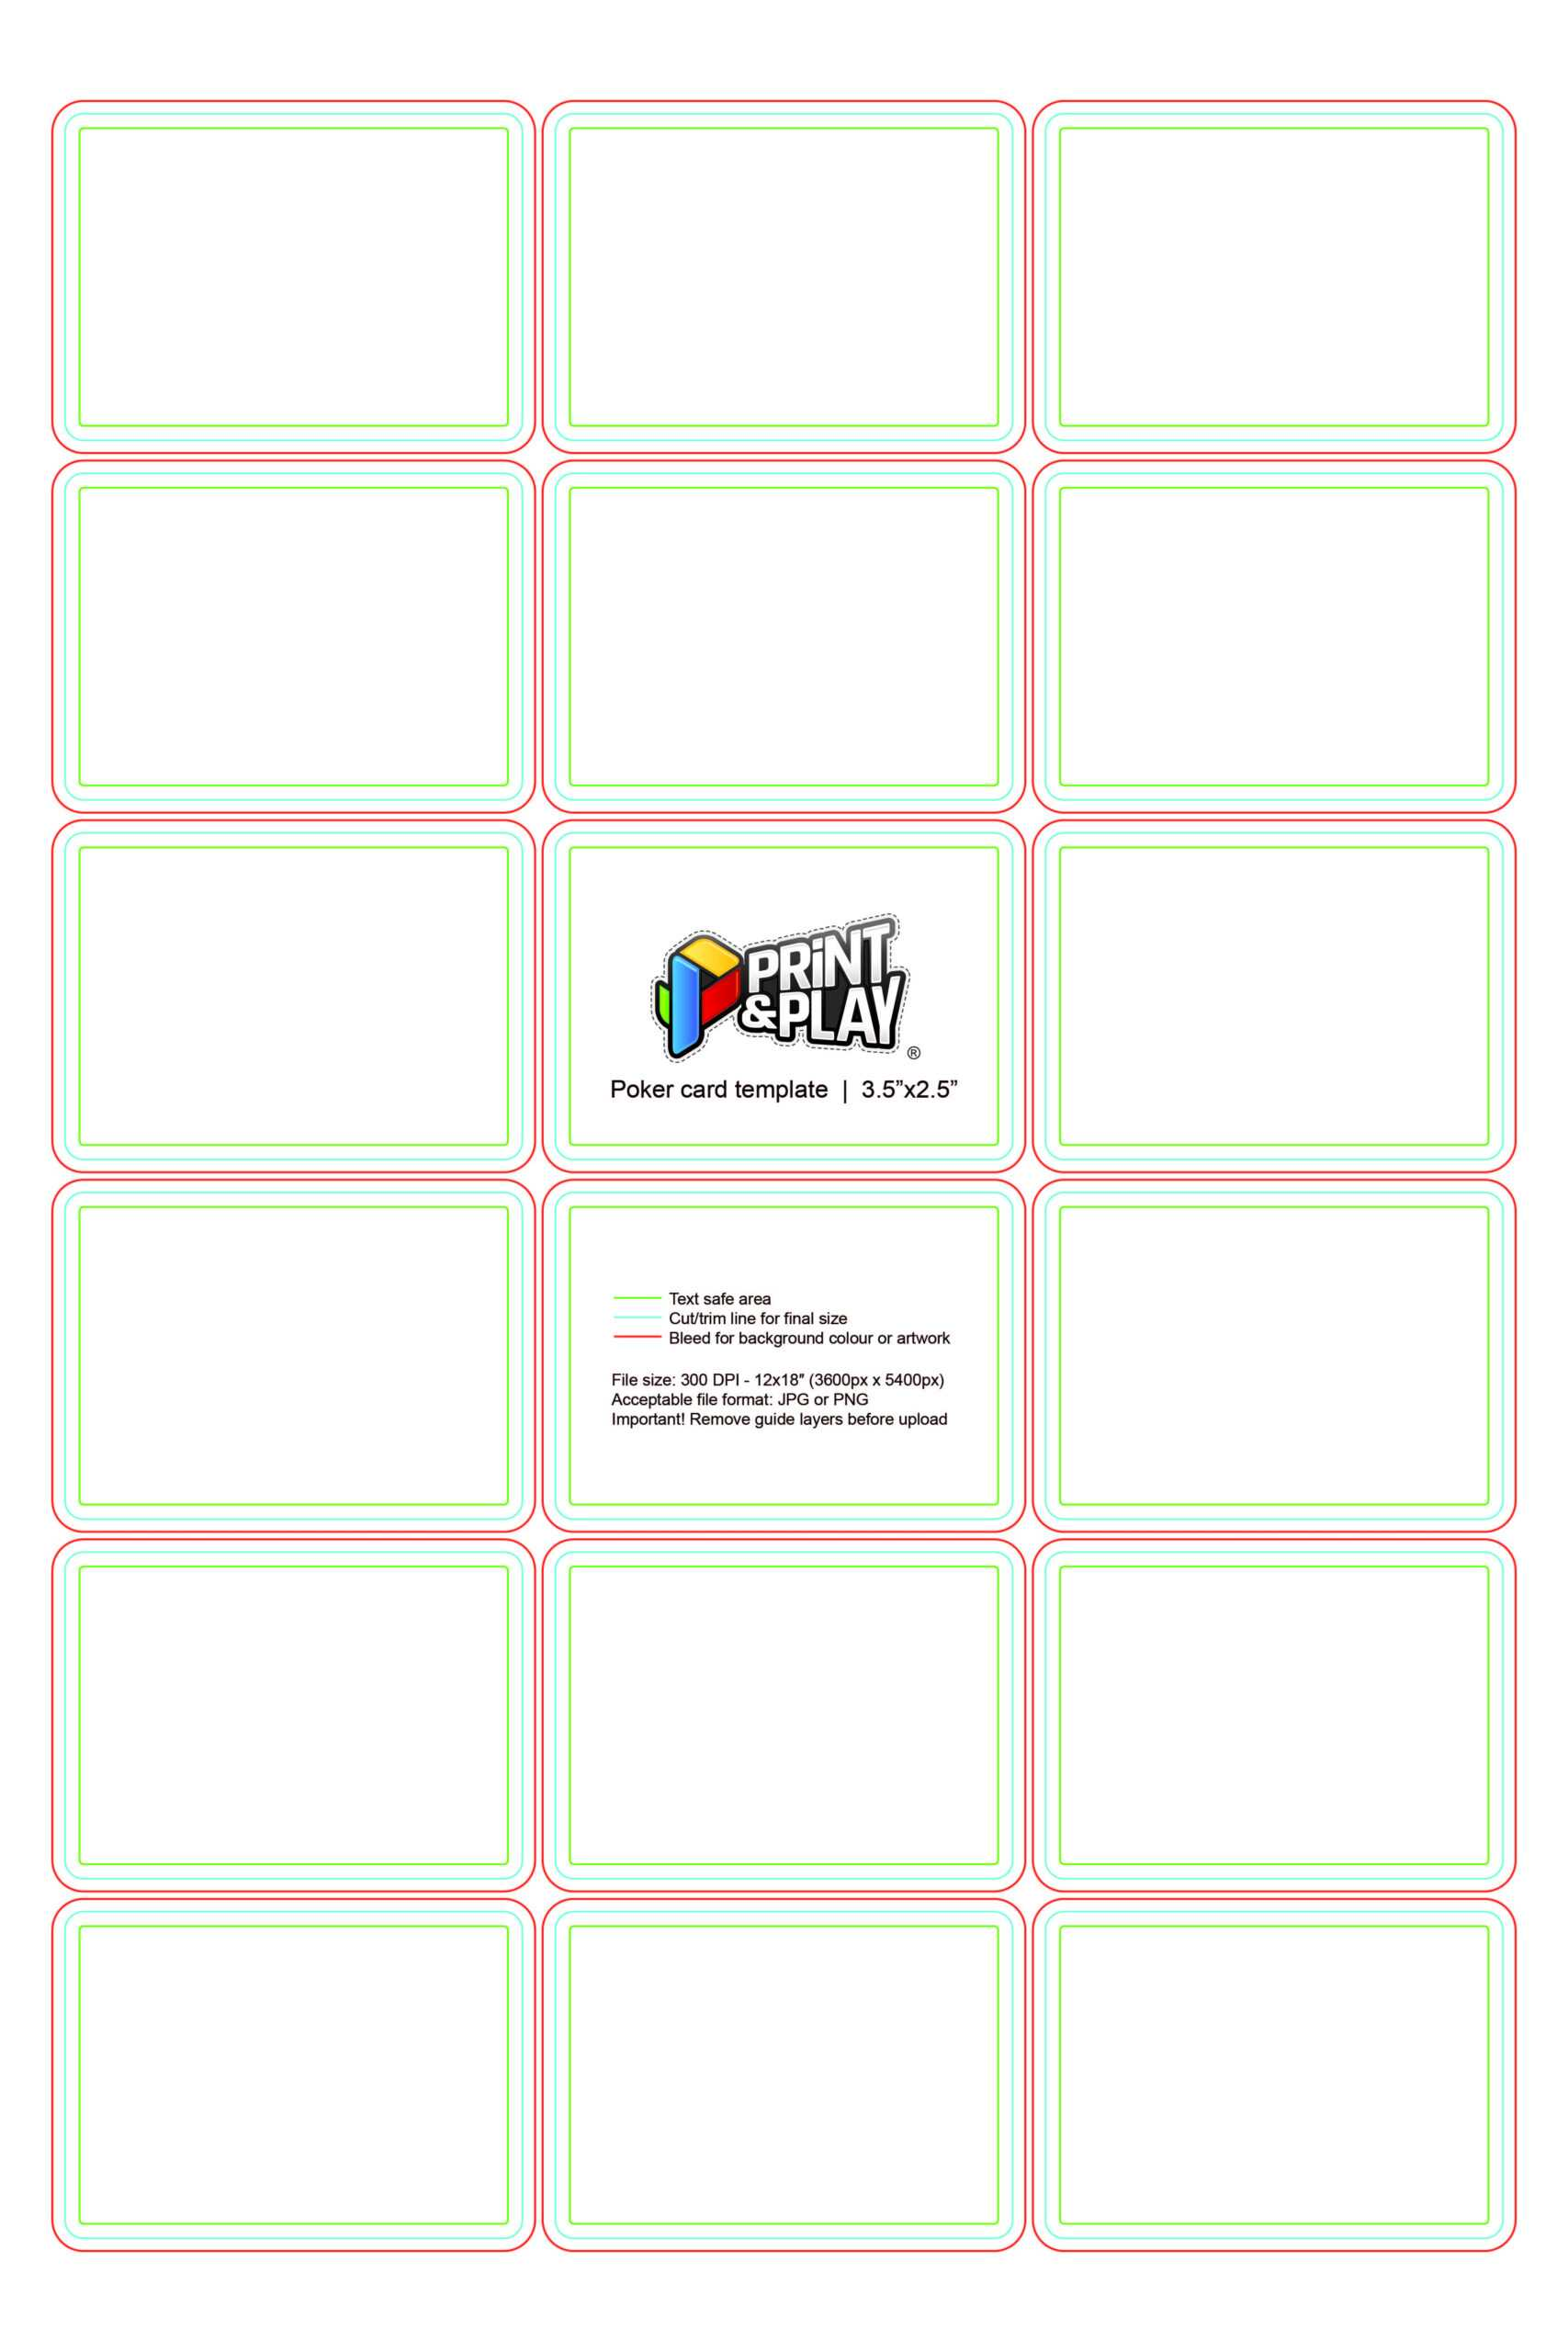 Playing Cards : Formatting & Templates - Print & Play within Top Trump Card Template